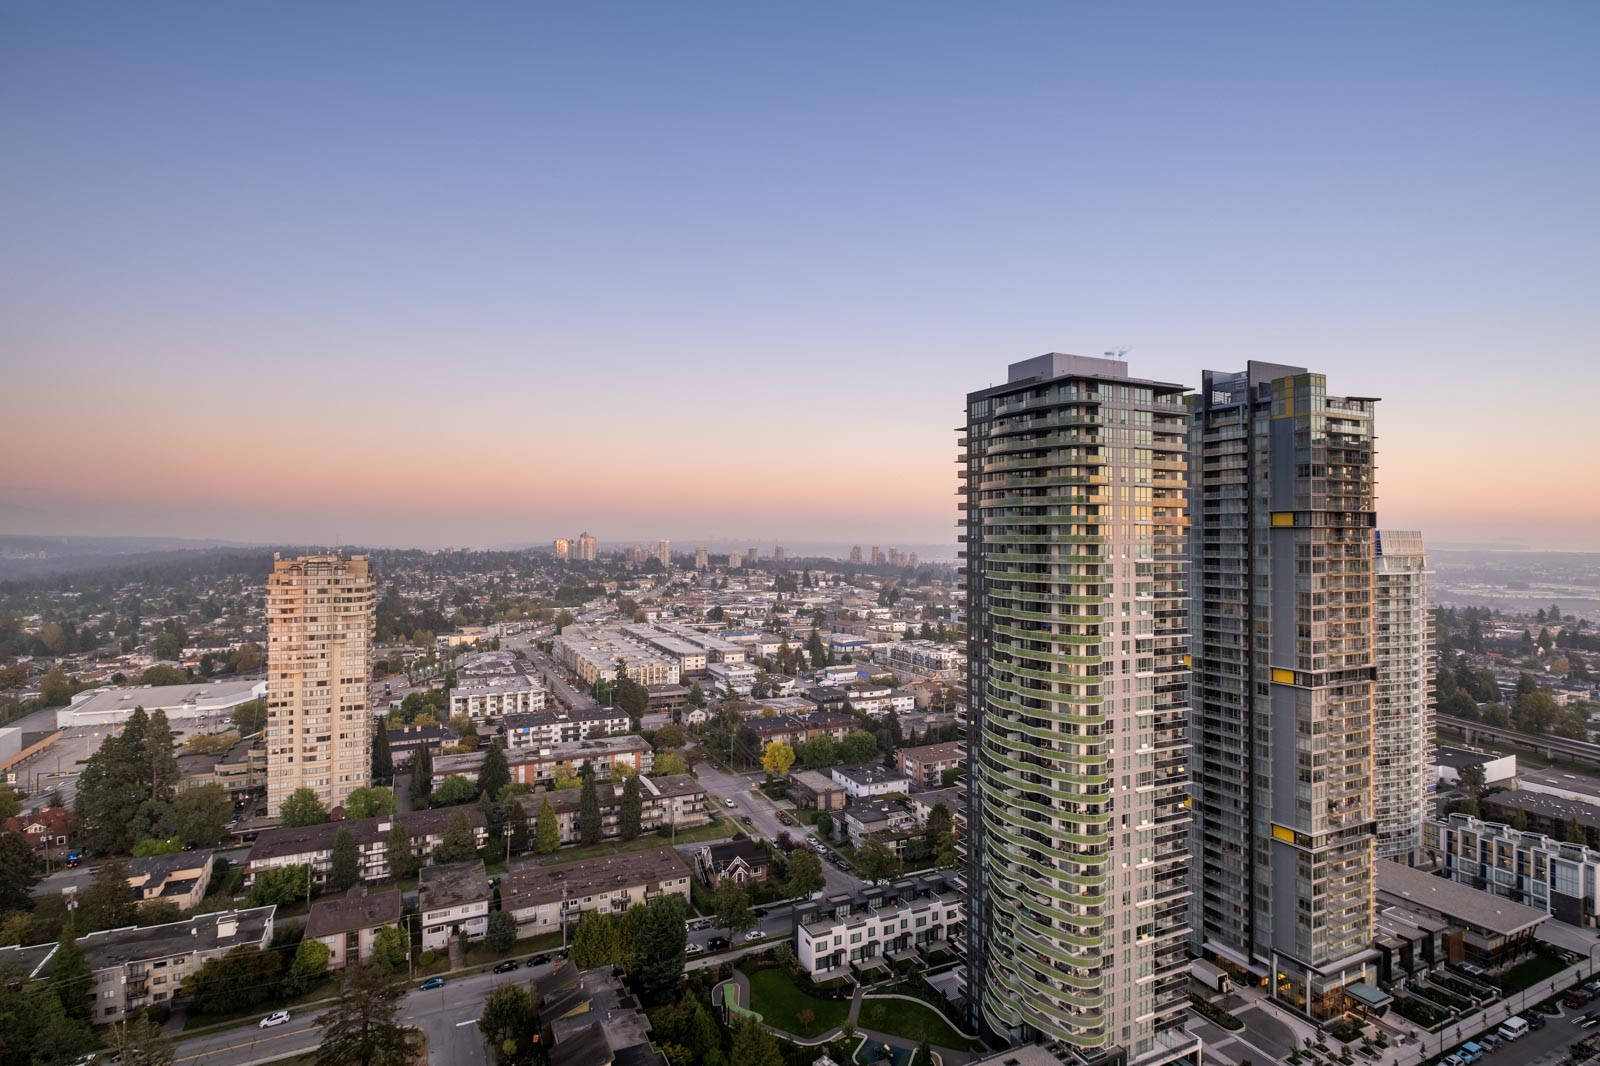 rooftop view of 6538 nelson avenue in burnaby